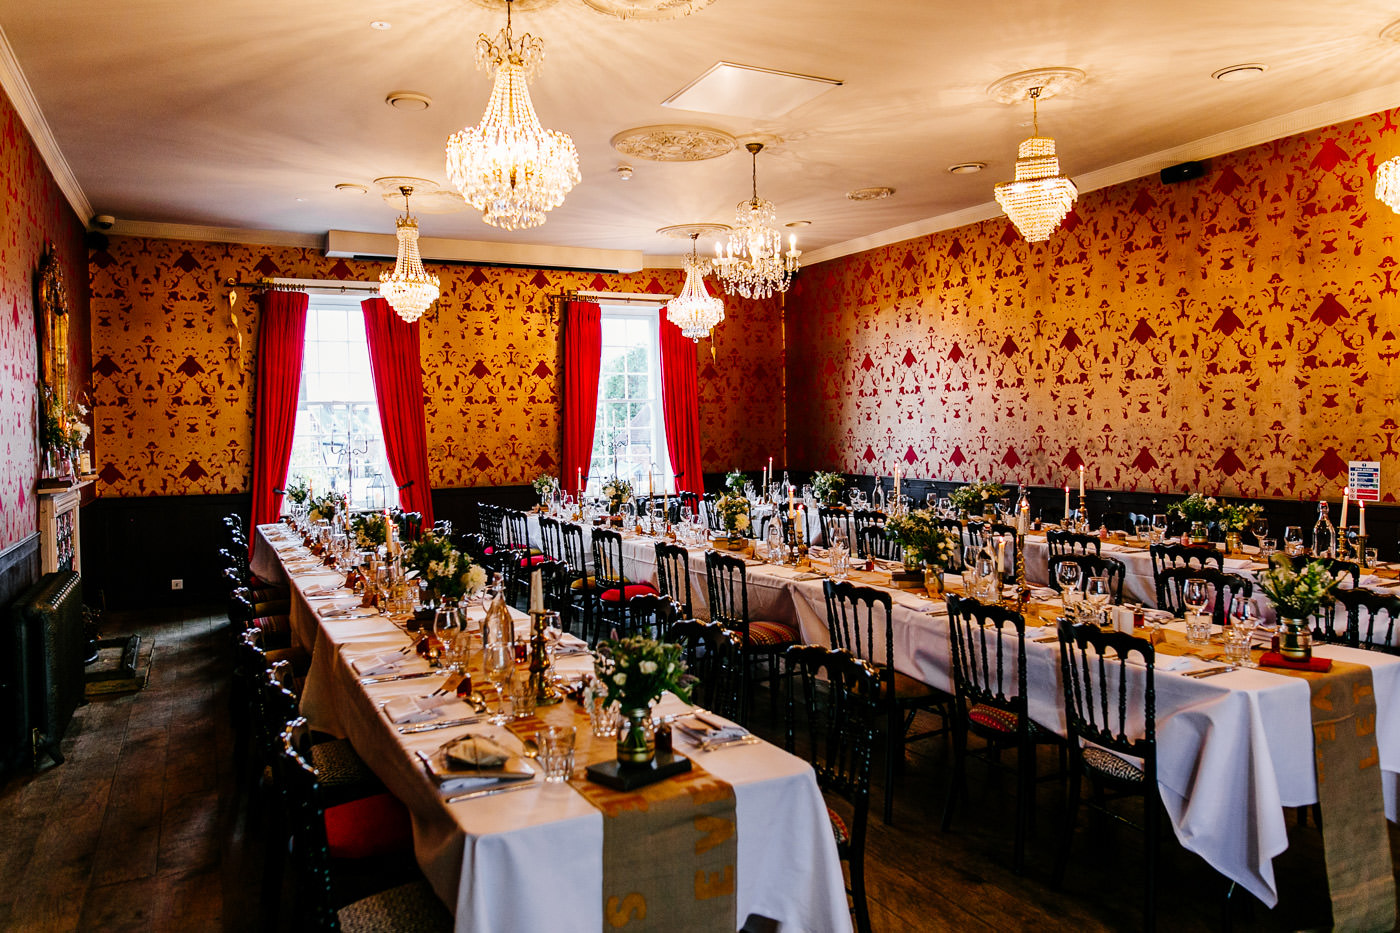 The-bell-in-Ticehurst-pub-kent-wedding-photographer-London-Epic-Love-Story-078